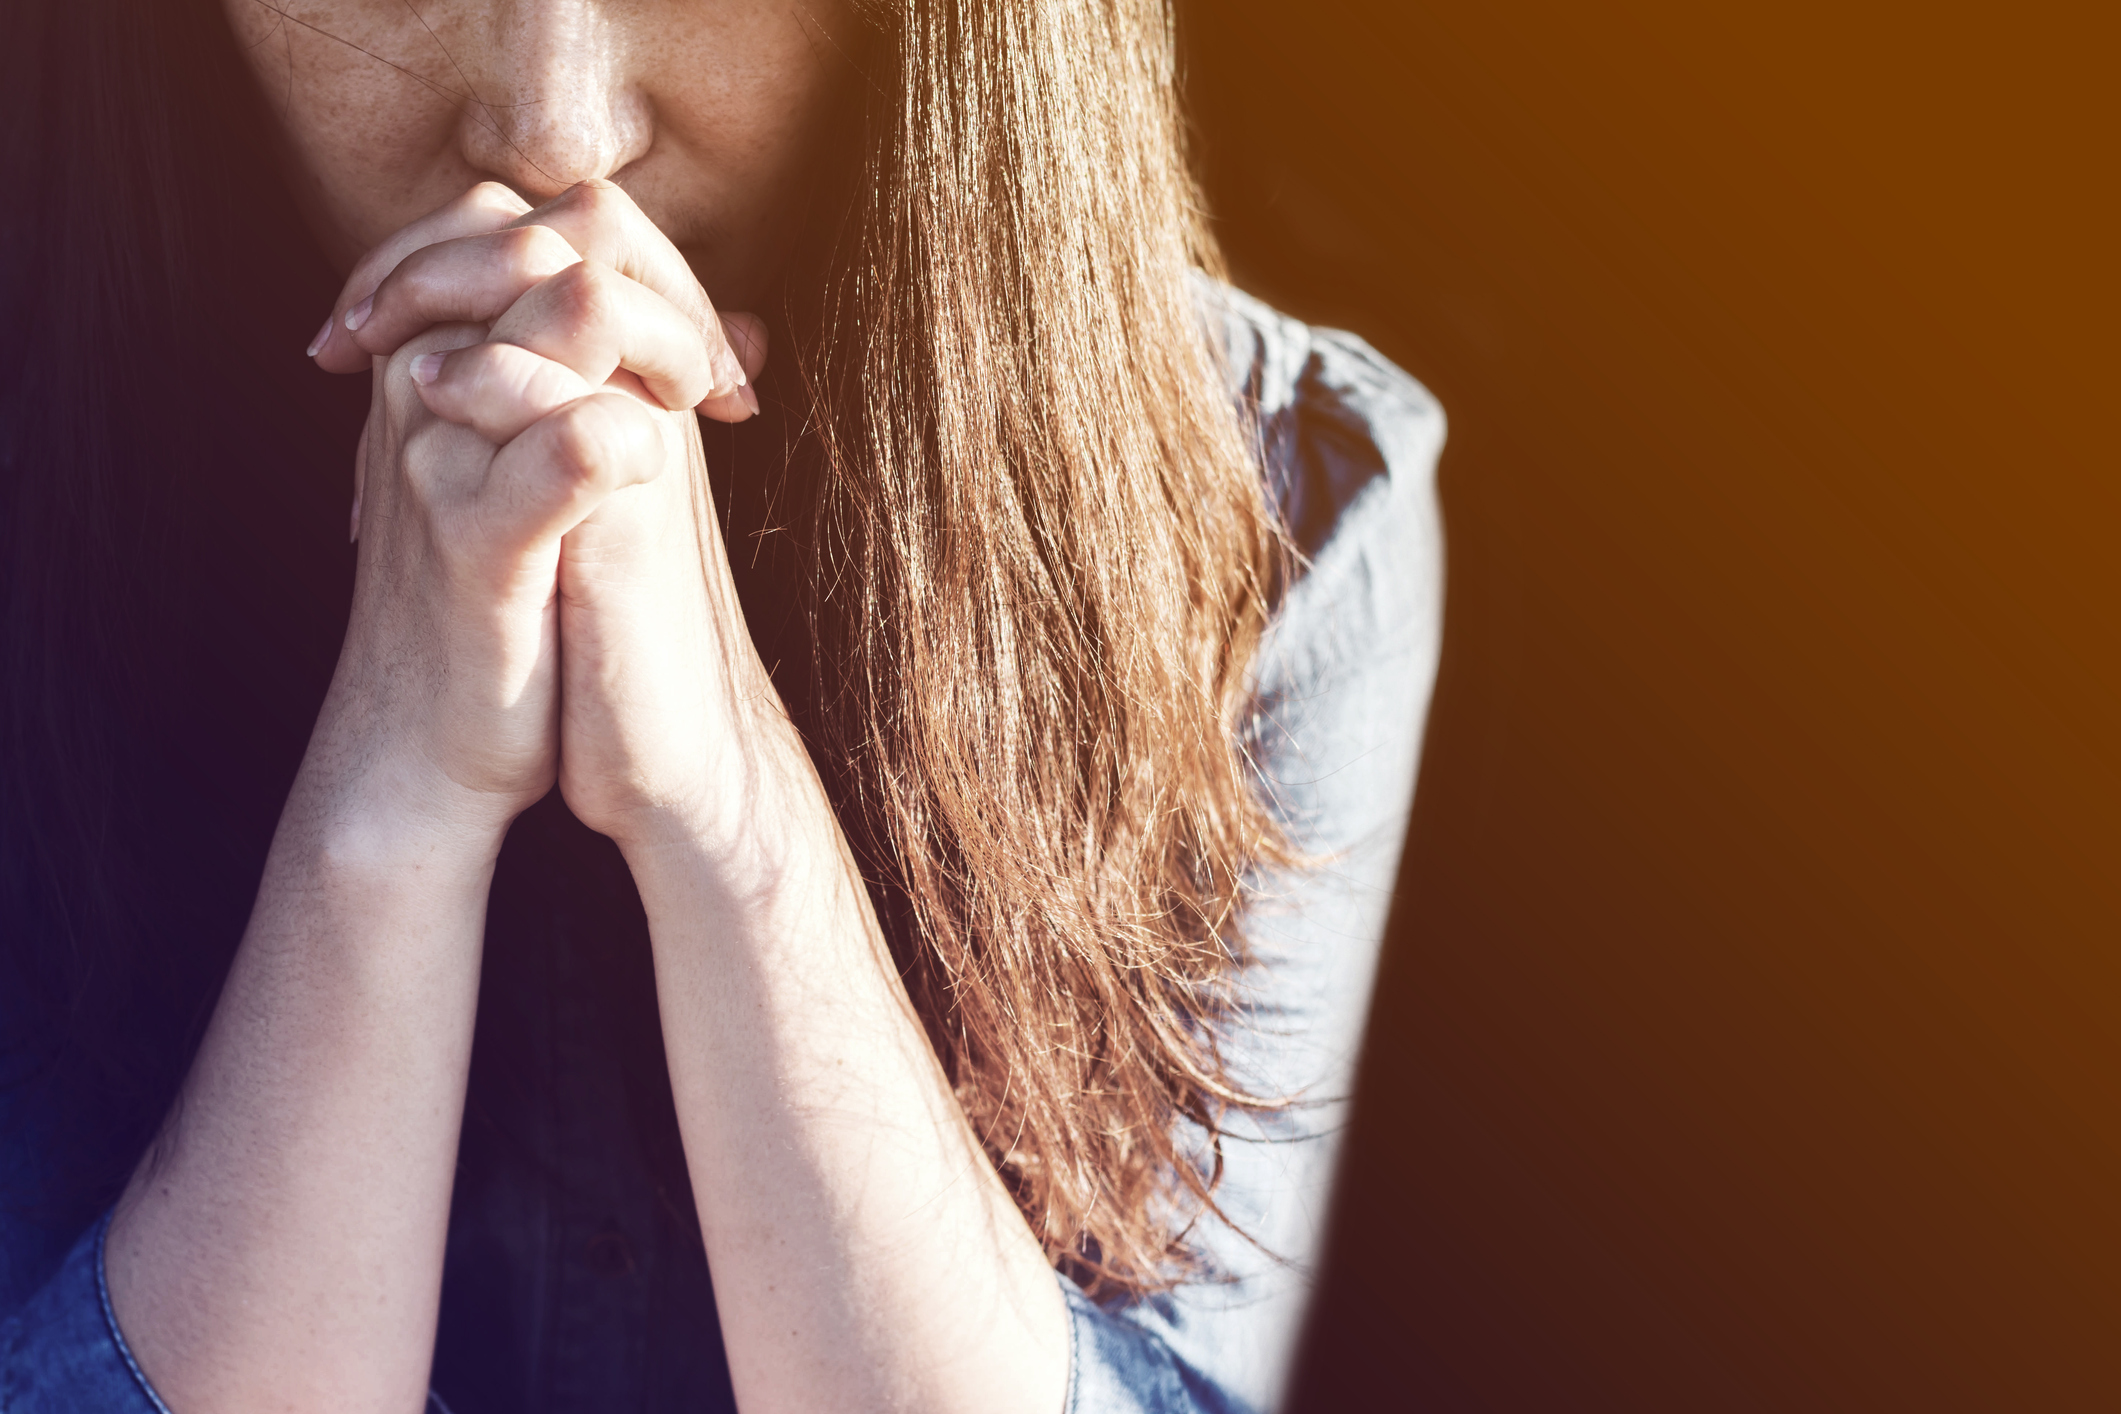 The Painful Process of Growing Close to God